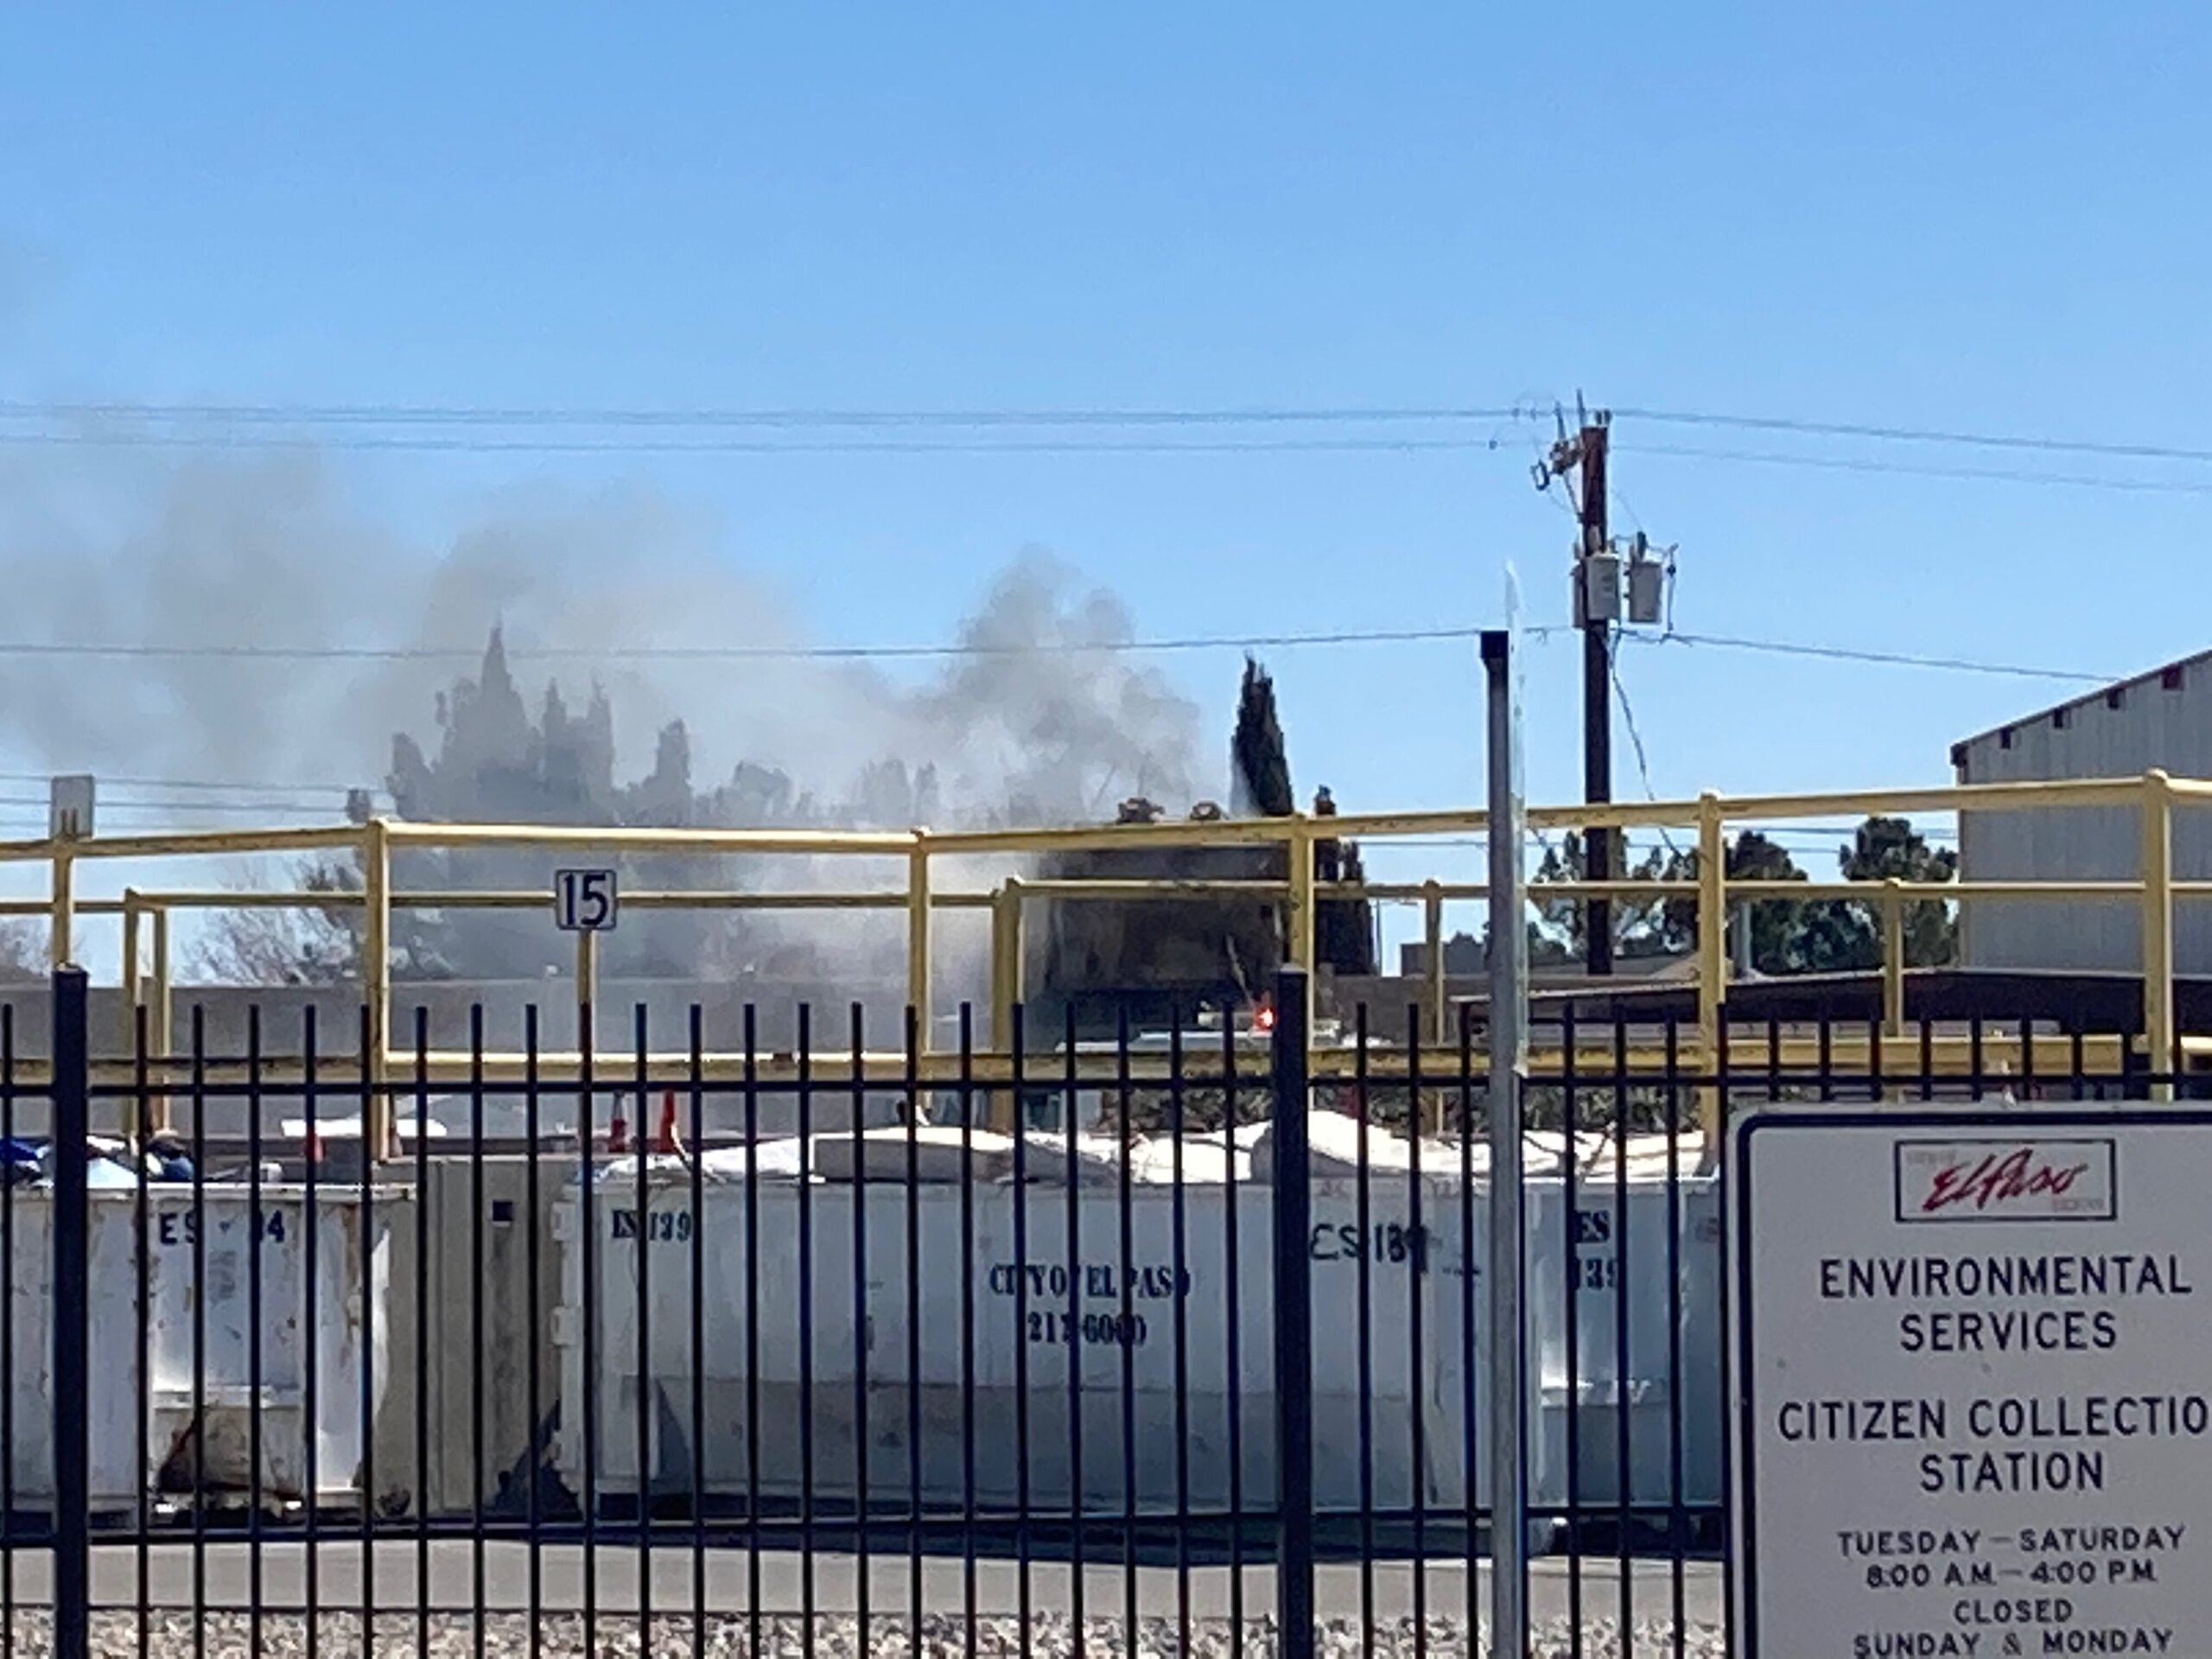 Scene of a fire at a city collection site on the east side.